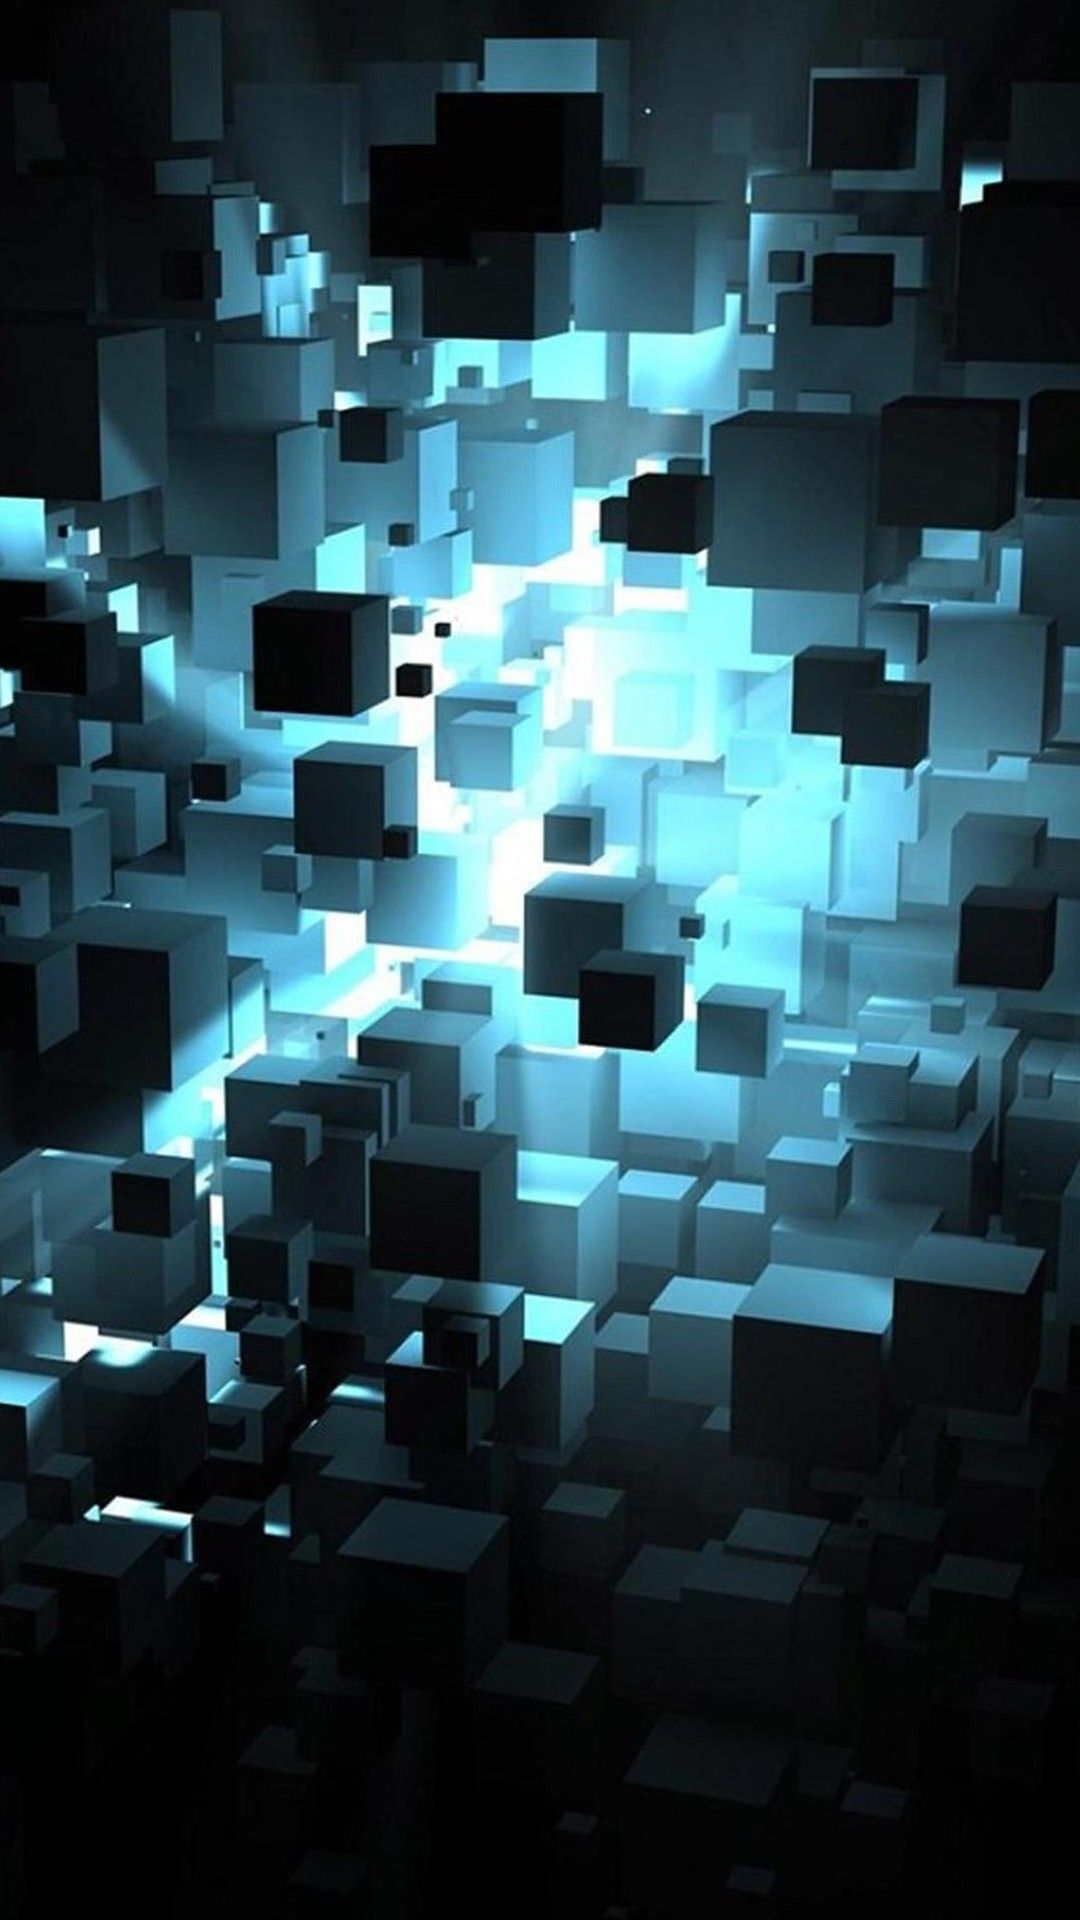 Cubes 3d Wallpaper For Android Wallpapers In 2019 3d Wallpaper